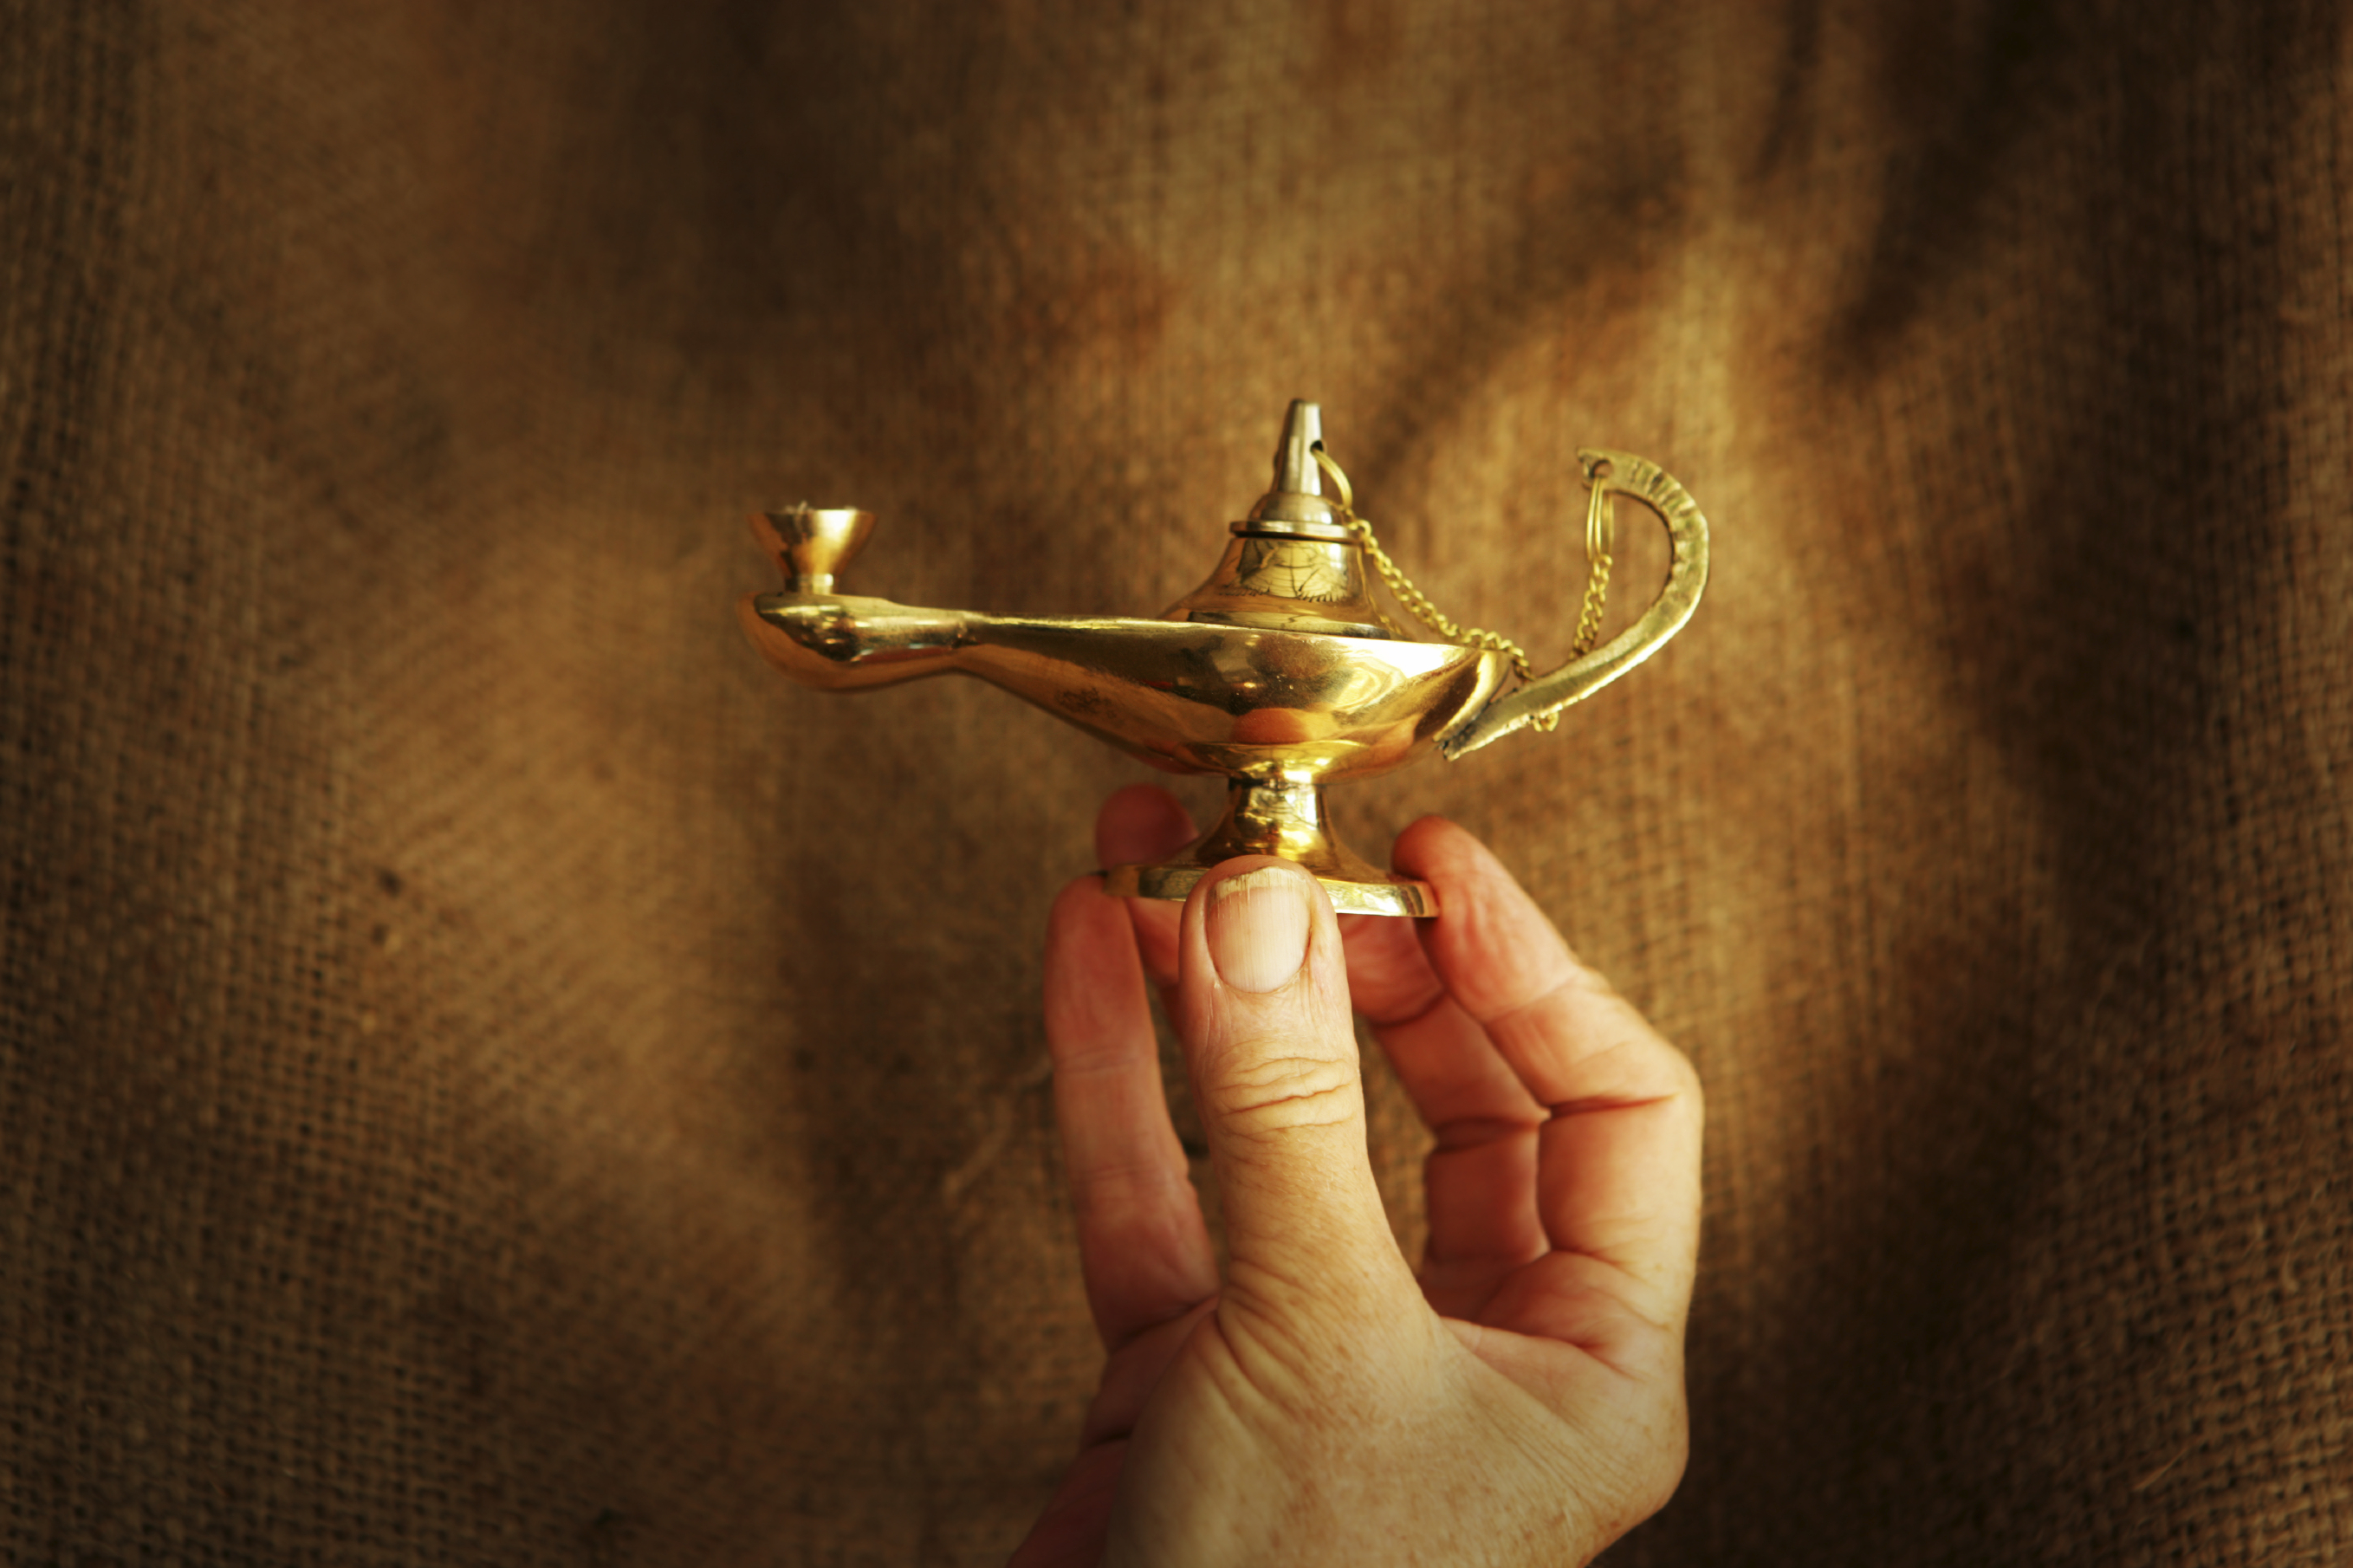 Genie lamp and hand